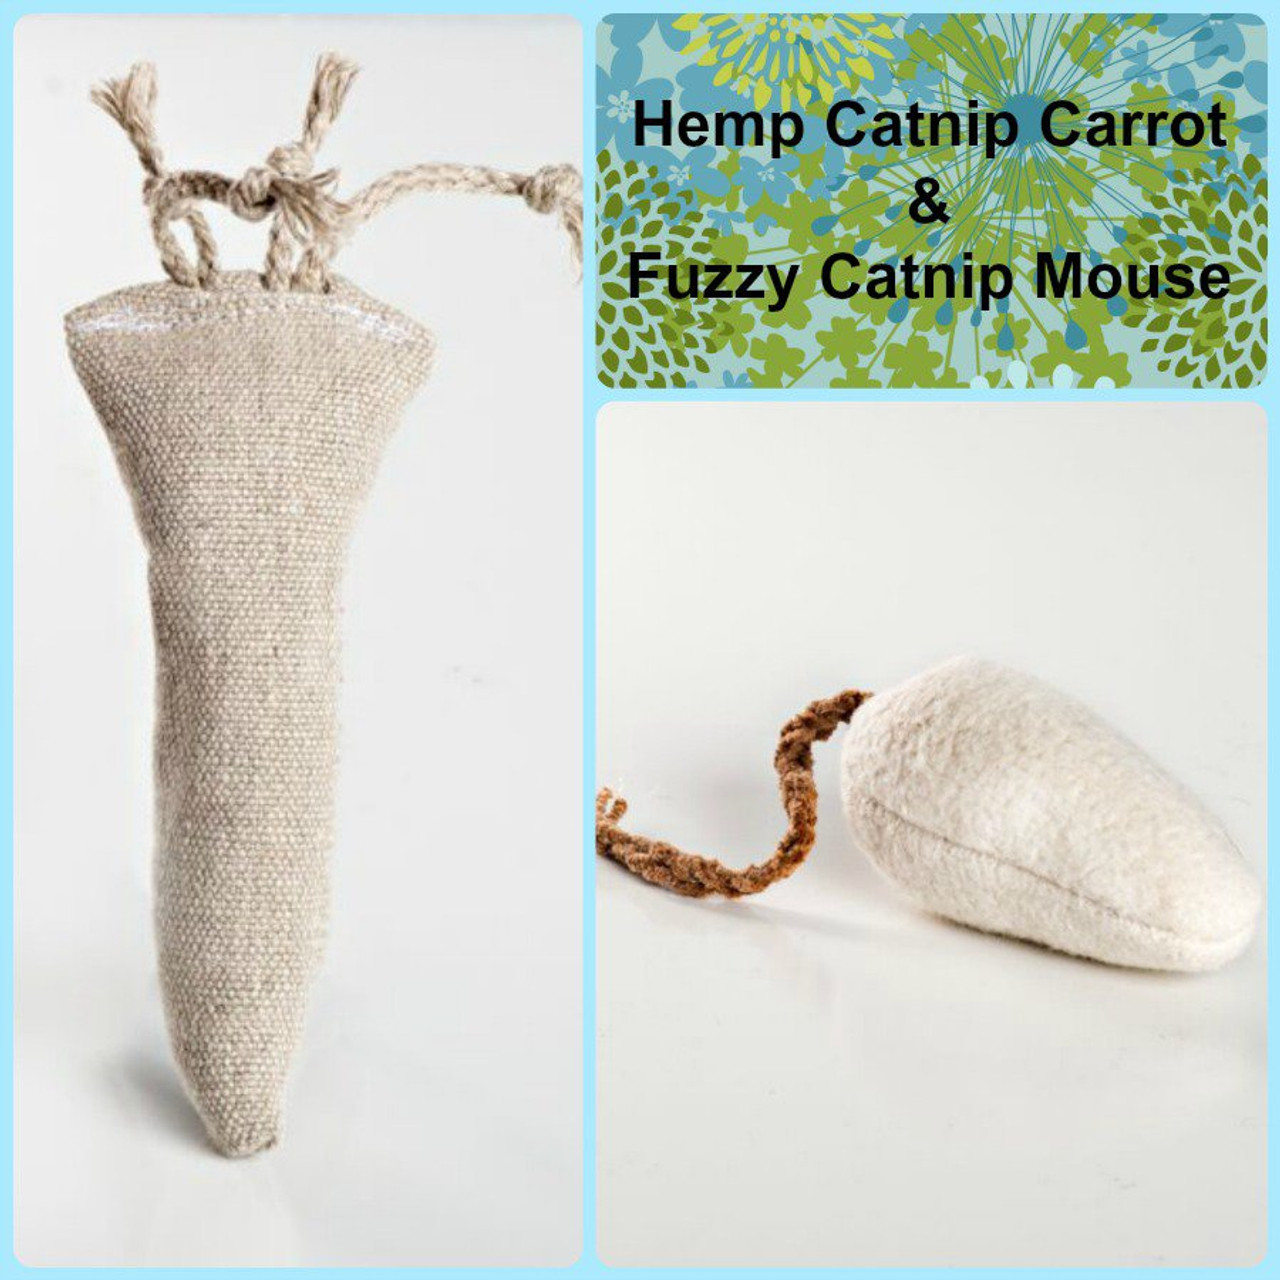 Small gift bag for cats. Includes hemp catnip carrot and medium fuzzy catnip mouse.